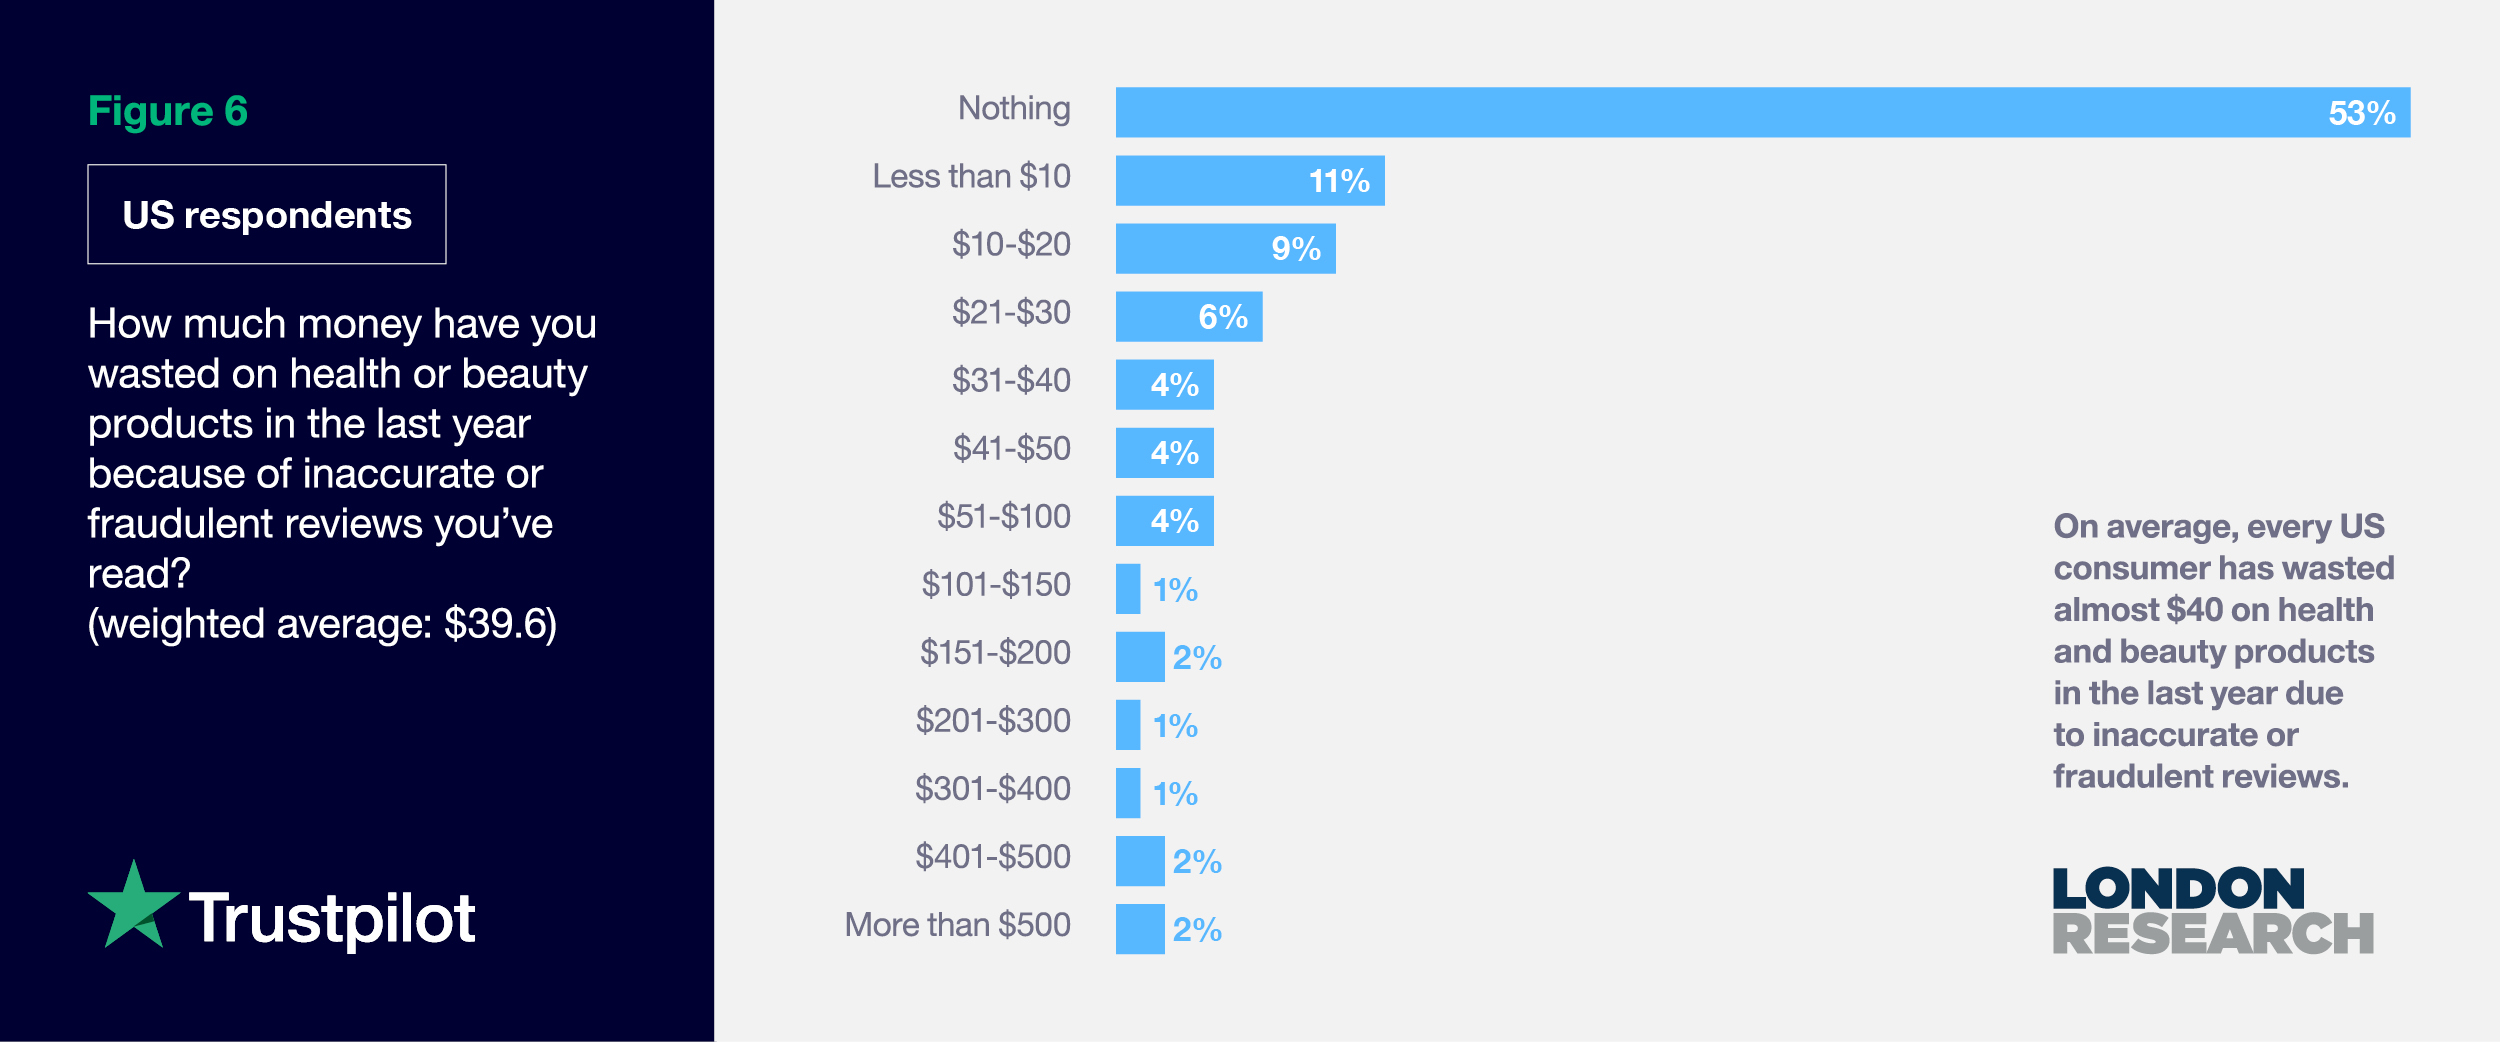 Figure 6: How much money have you wasted on health or beauty products due to fake reviews?